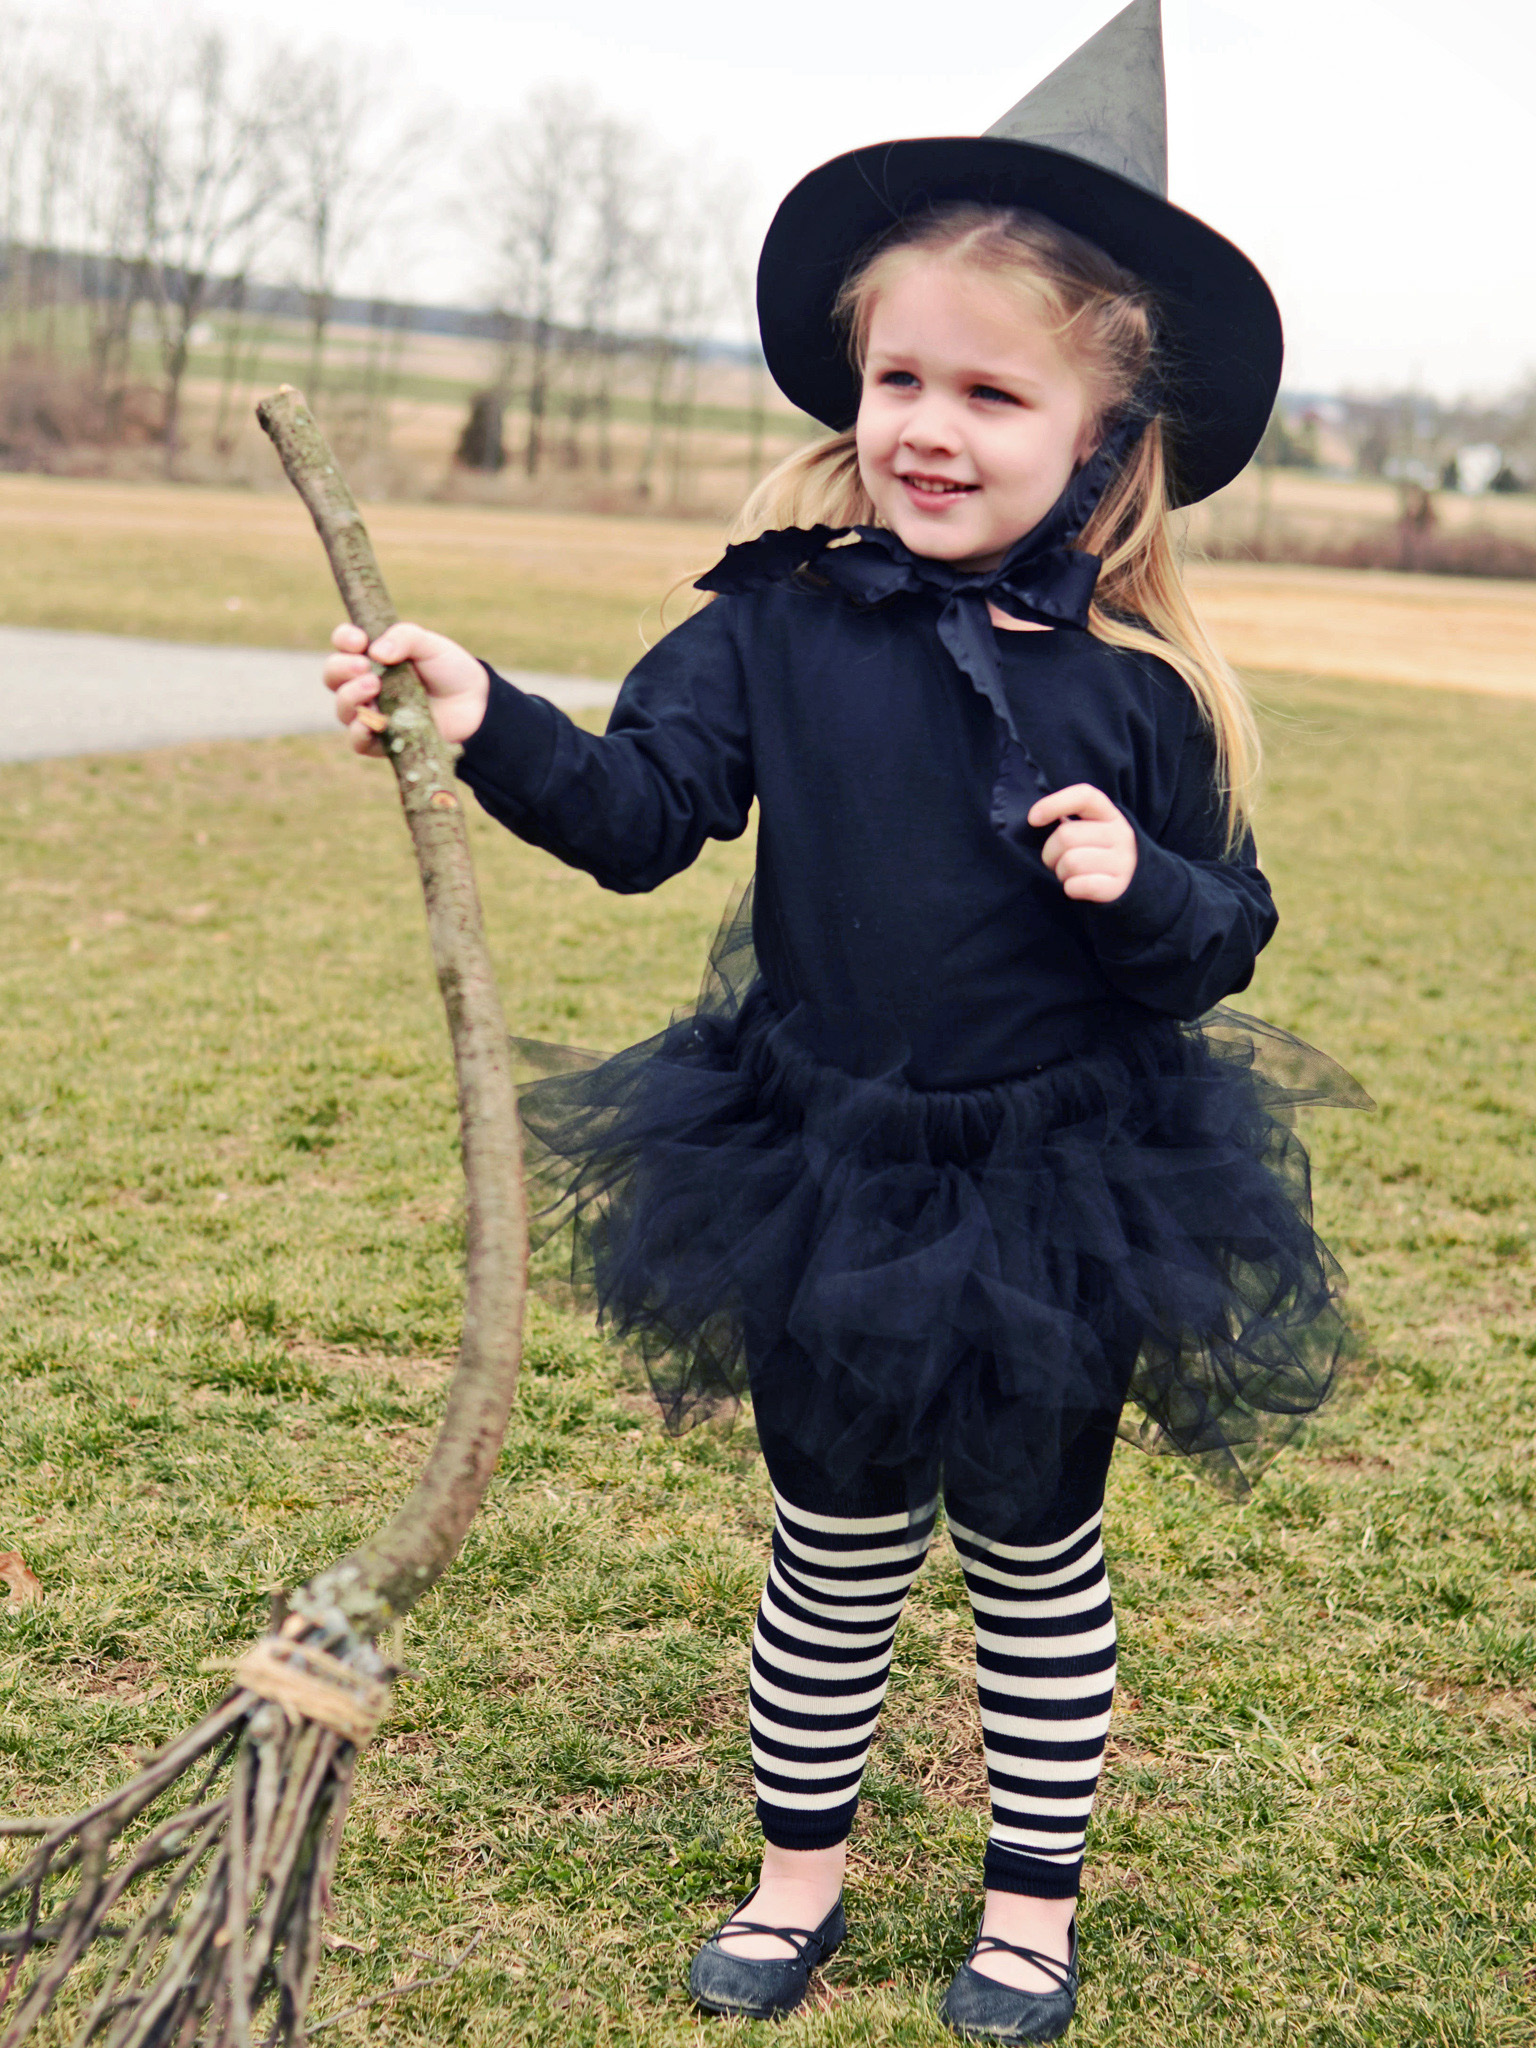 Witch Costumes For Kids Homemade - More information